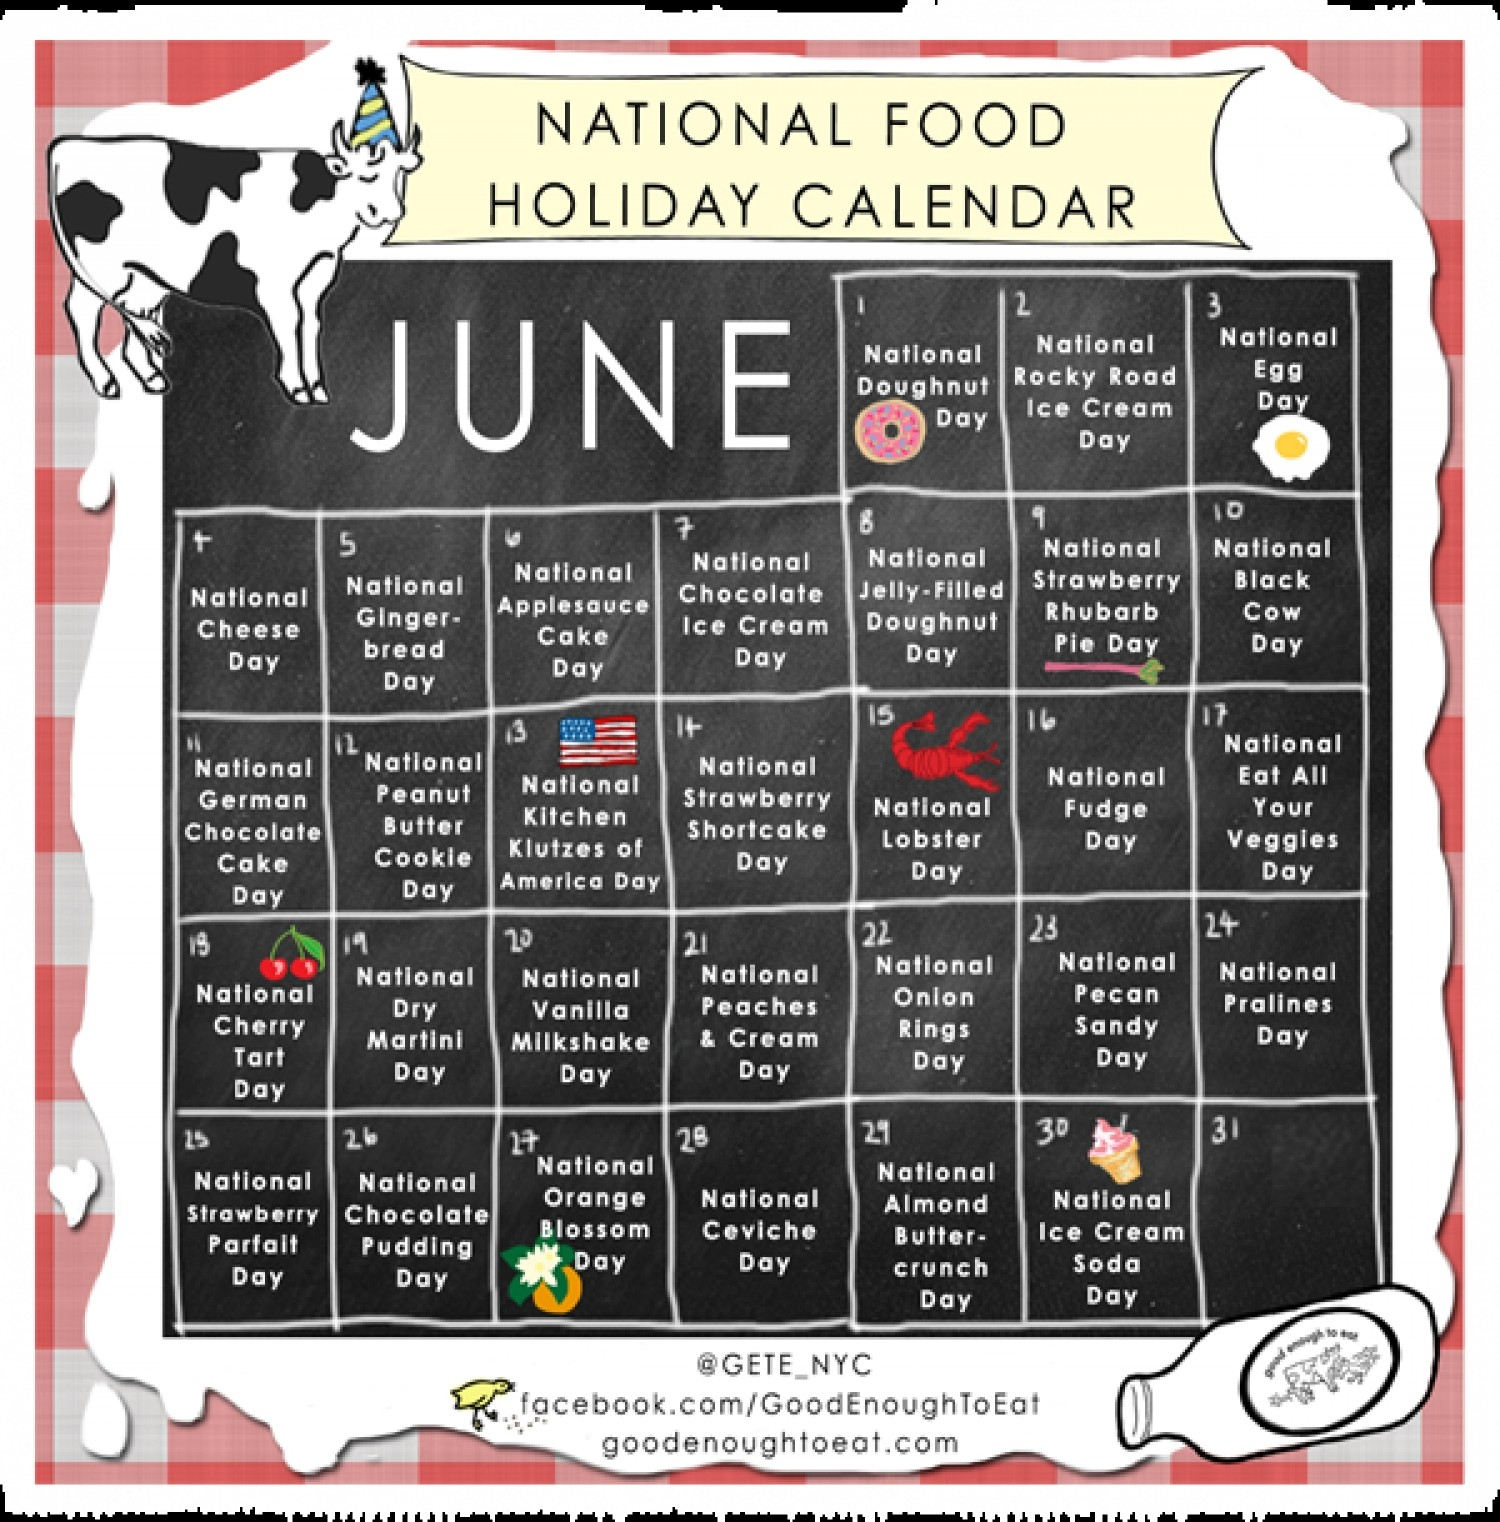 National Food Holiday Calendar - June 2013 | Visual.ly-Calendar Of Food Holidays